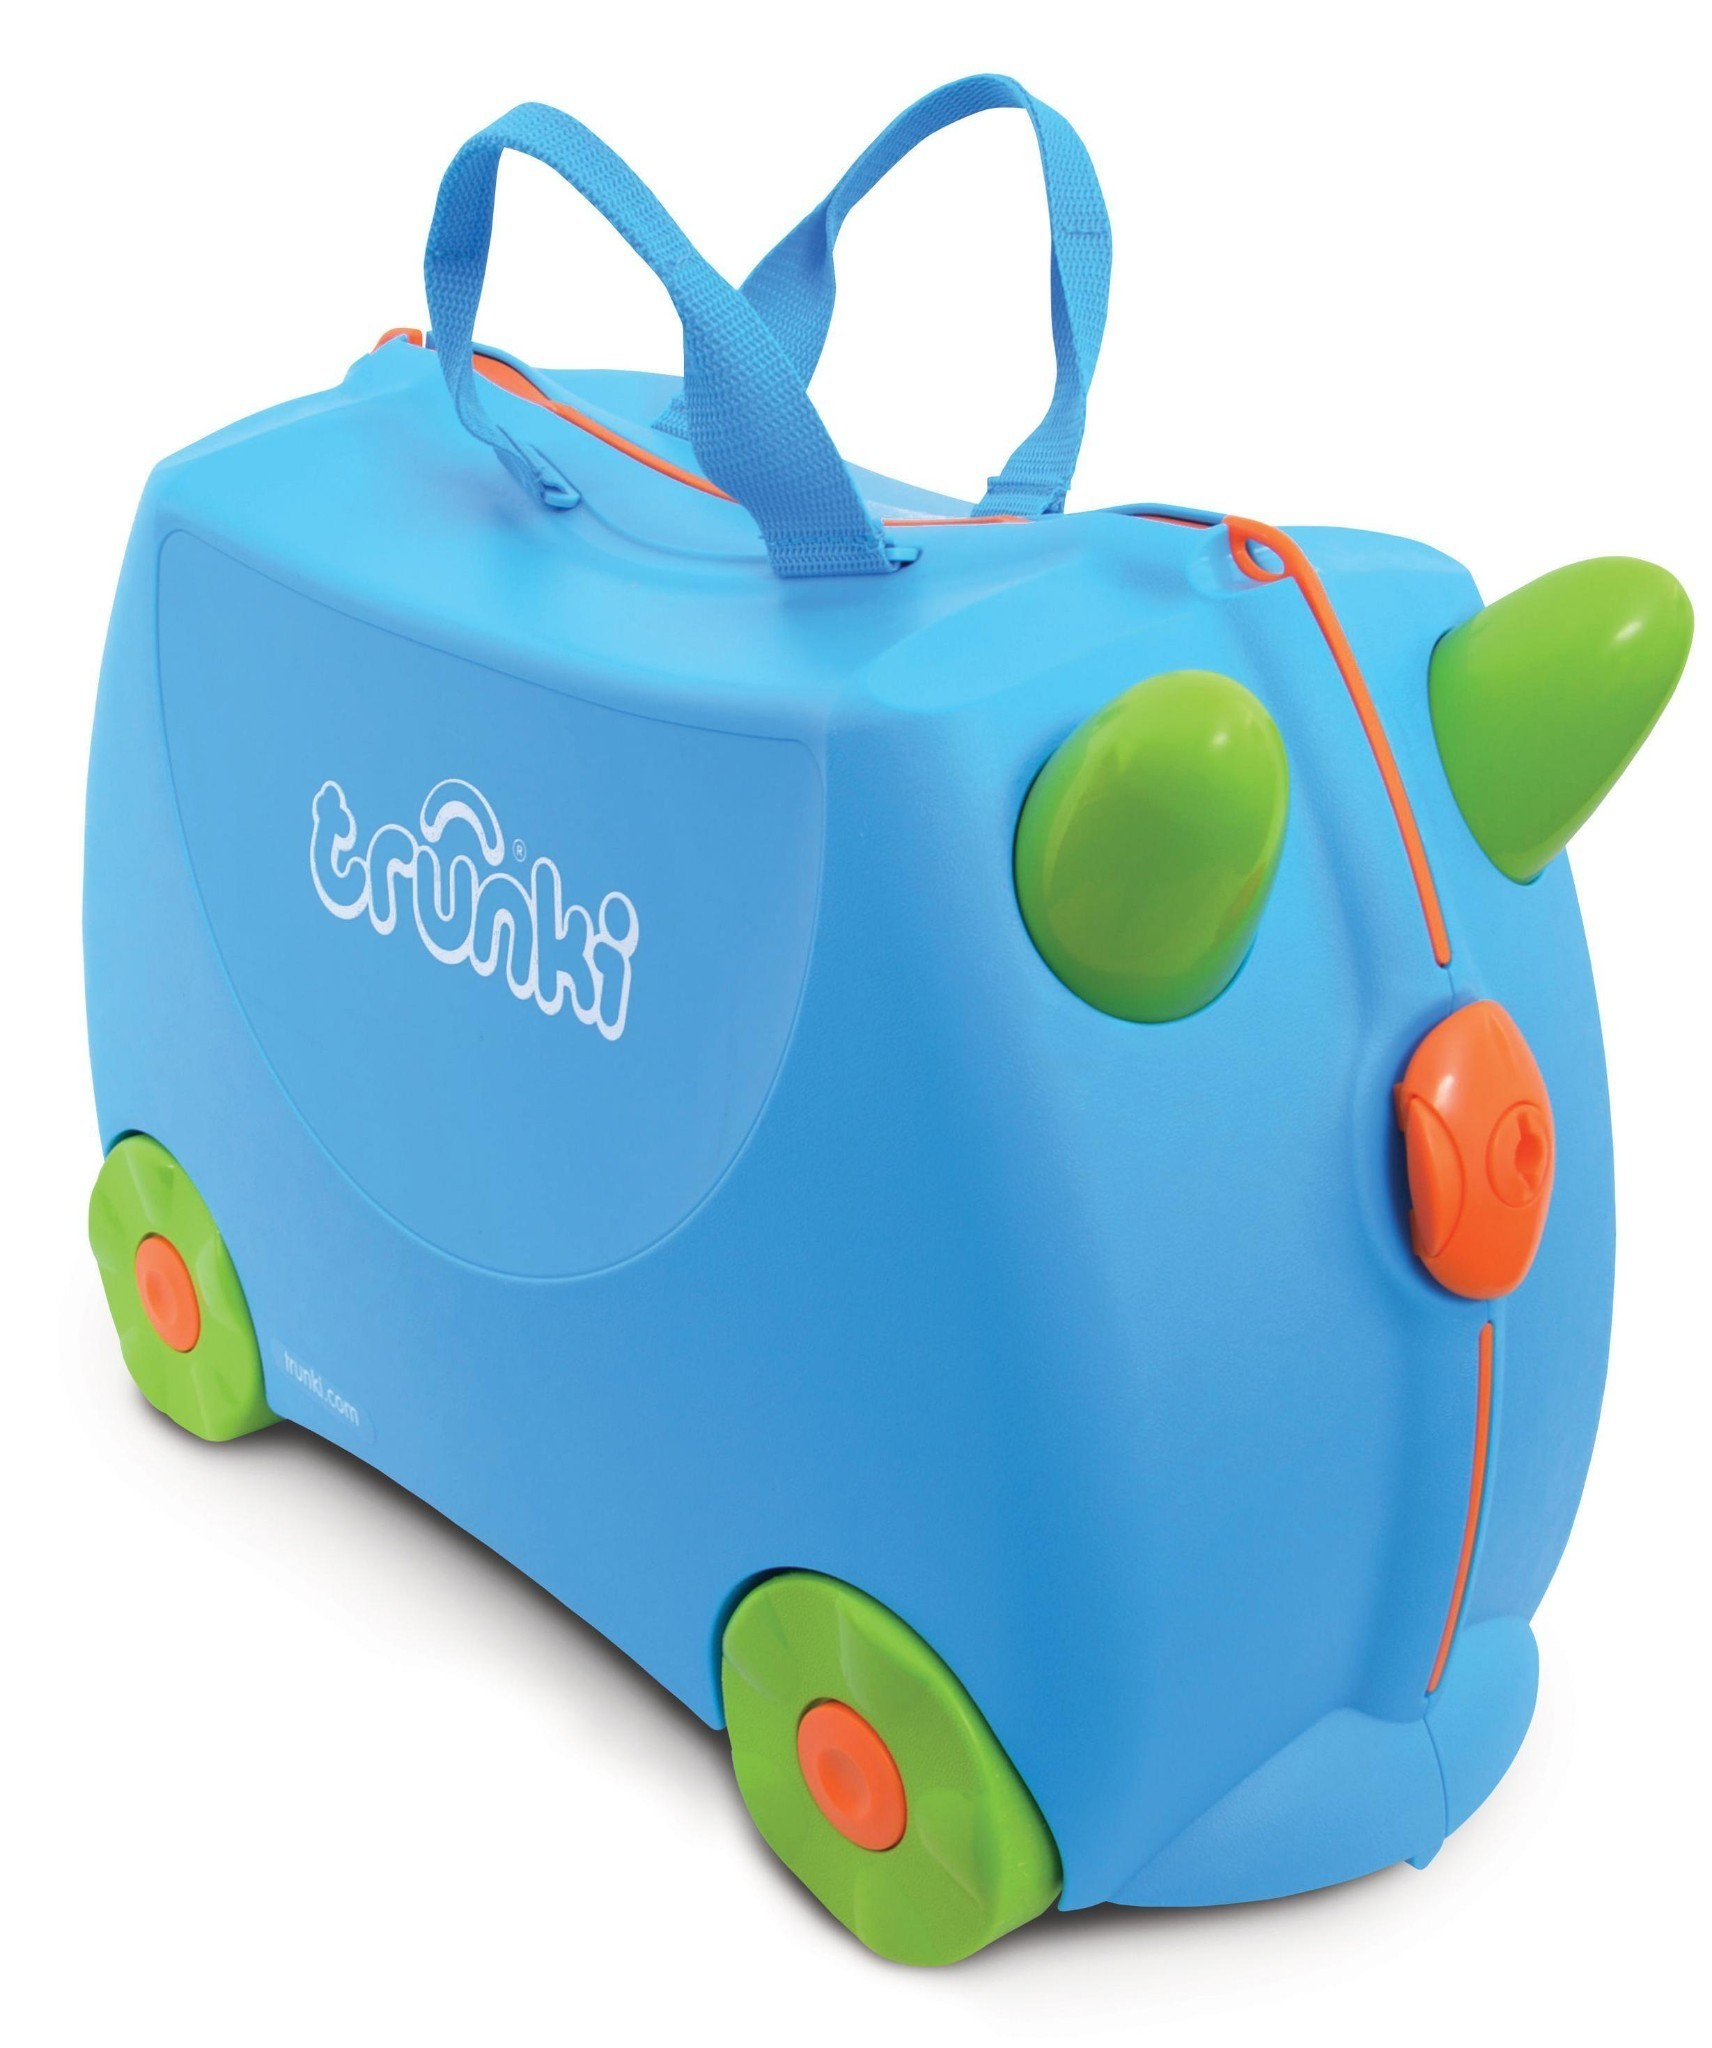 Trunki trumped by Kiddee in design battle of the suitcases